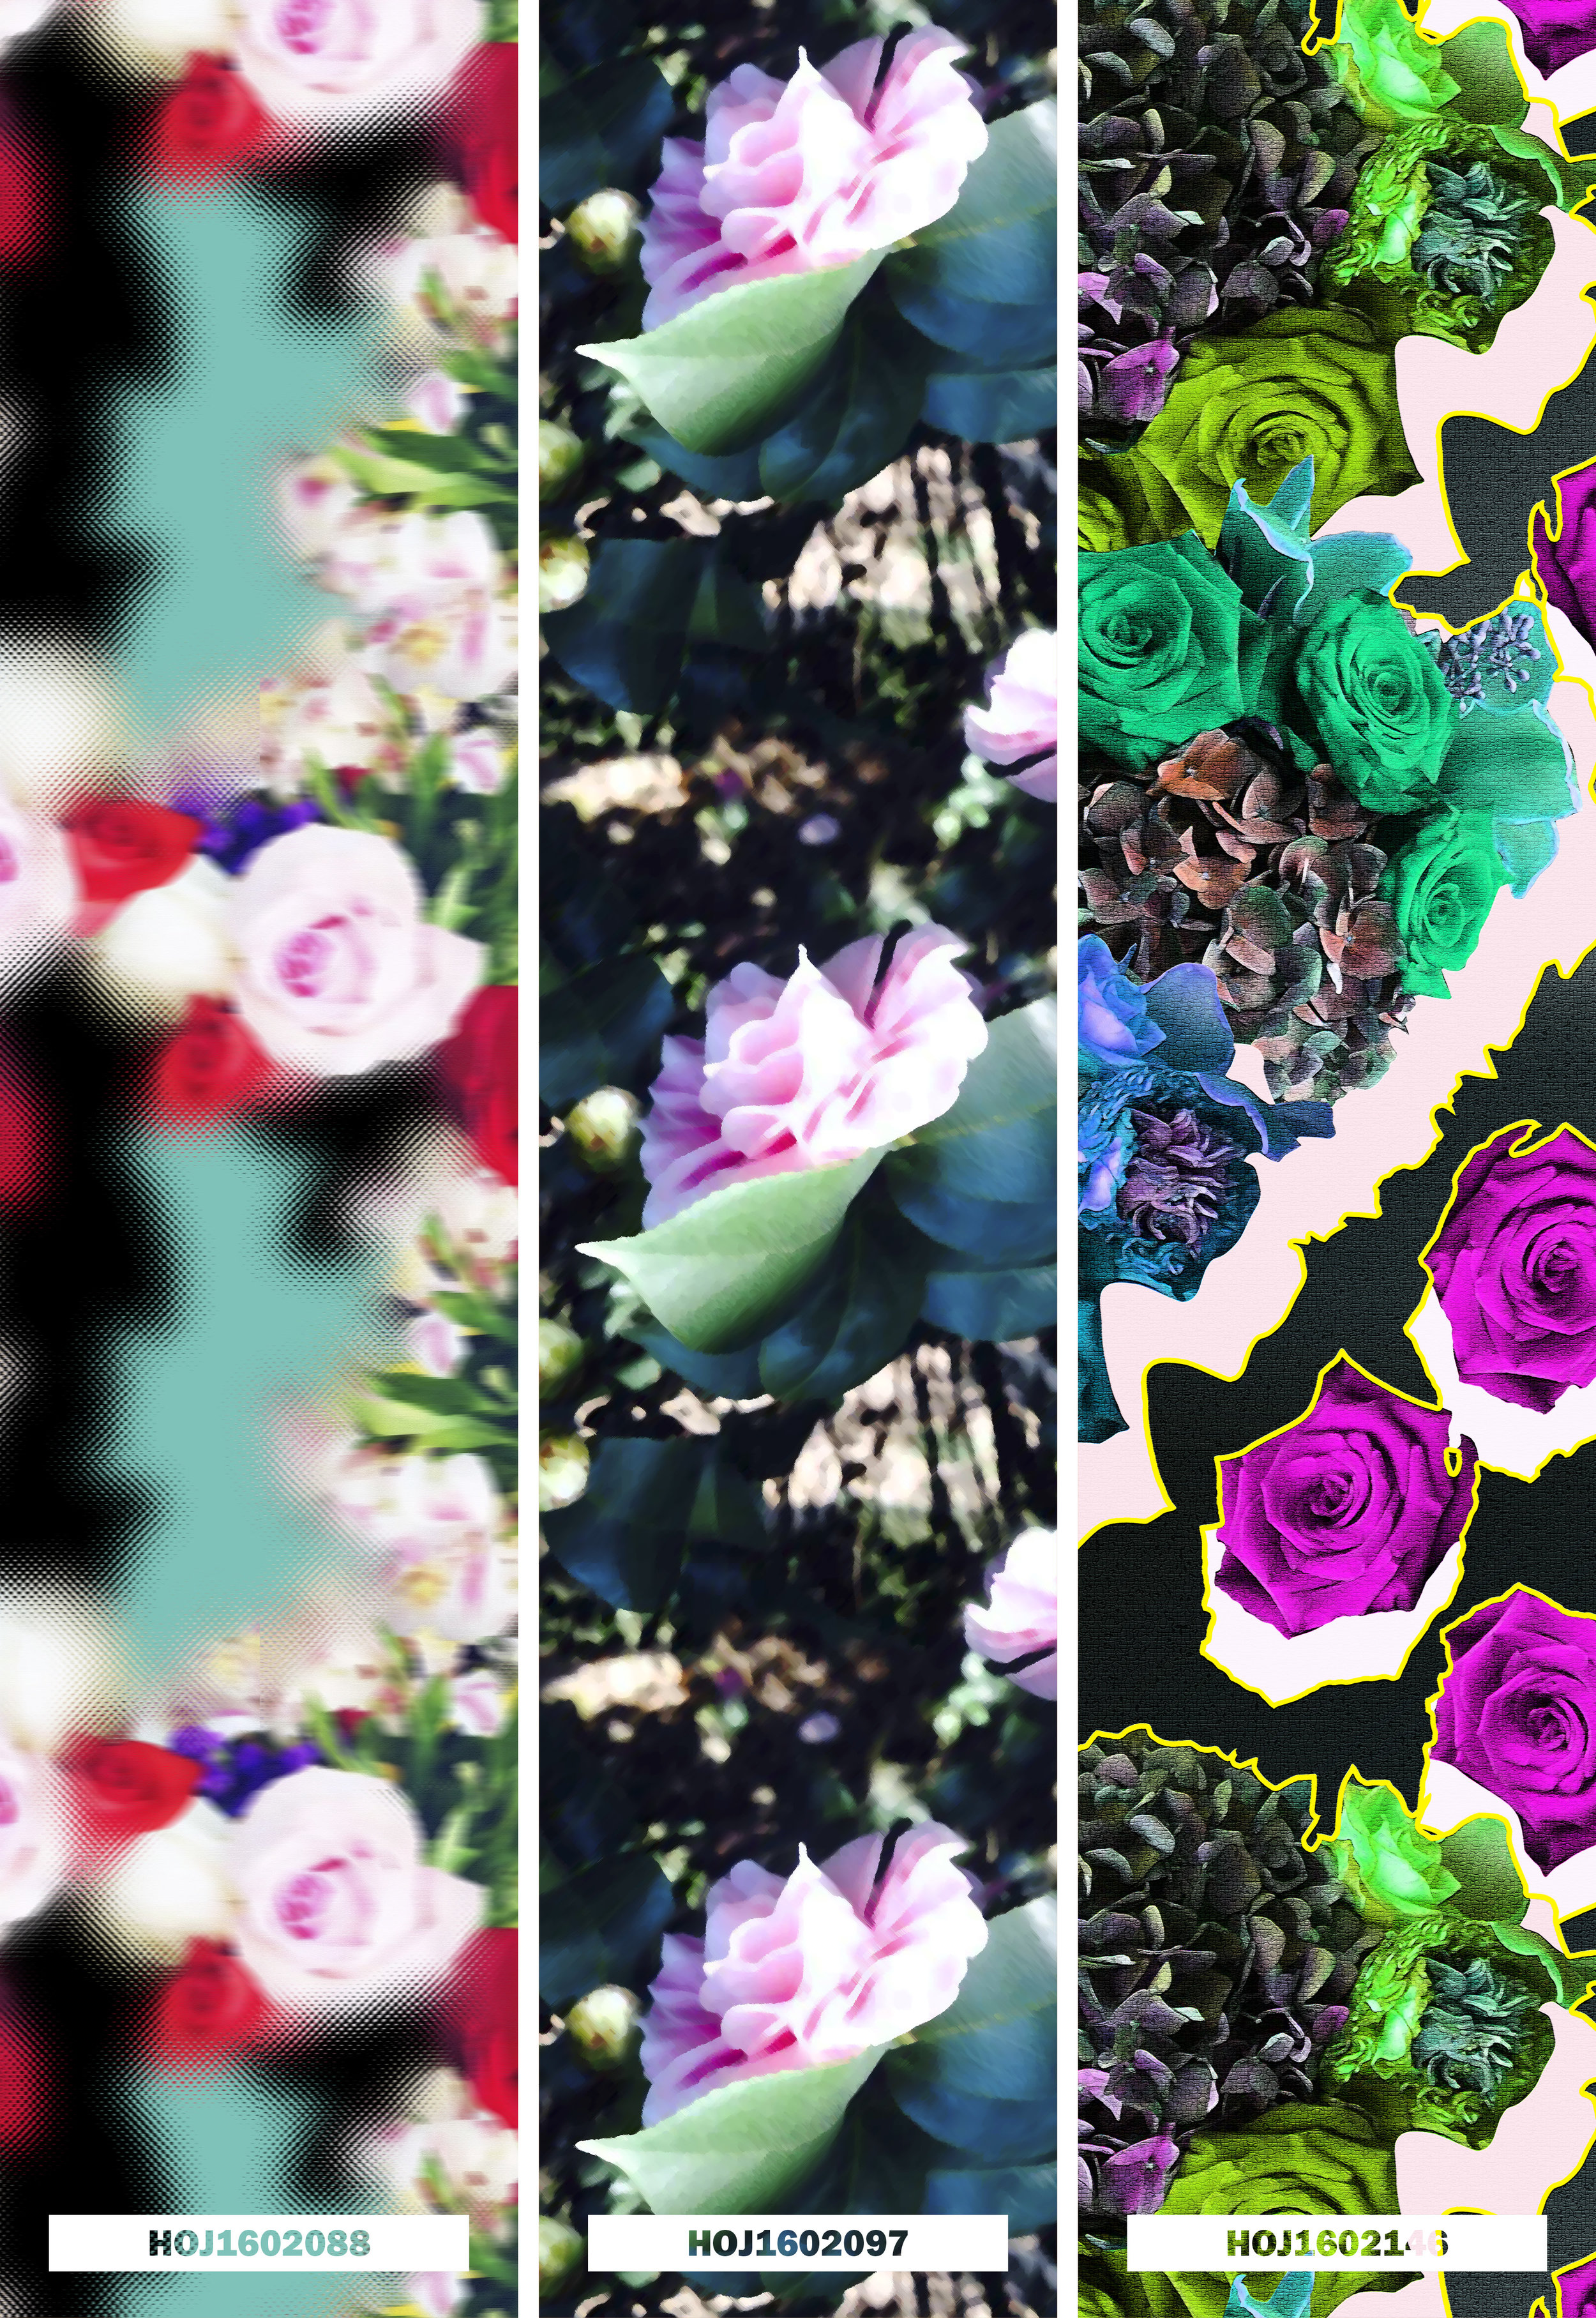 An online trend report blog, curated by House of June,  with a focus on color and print patterns design directions for fashion and home interior design industry